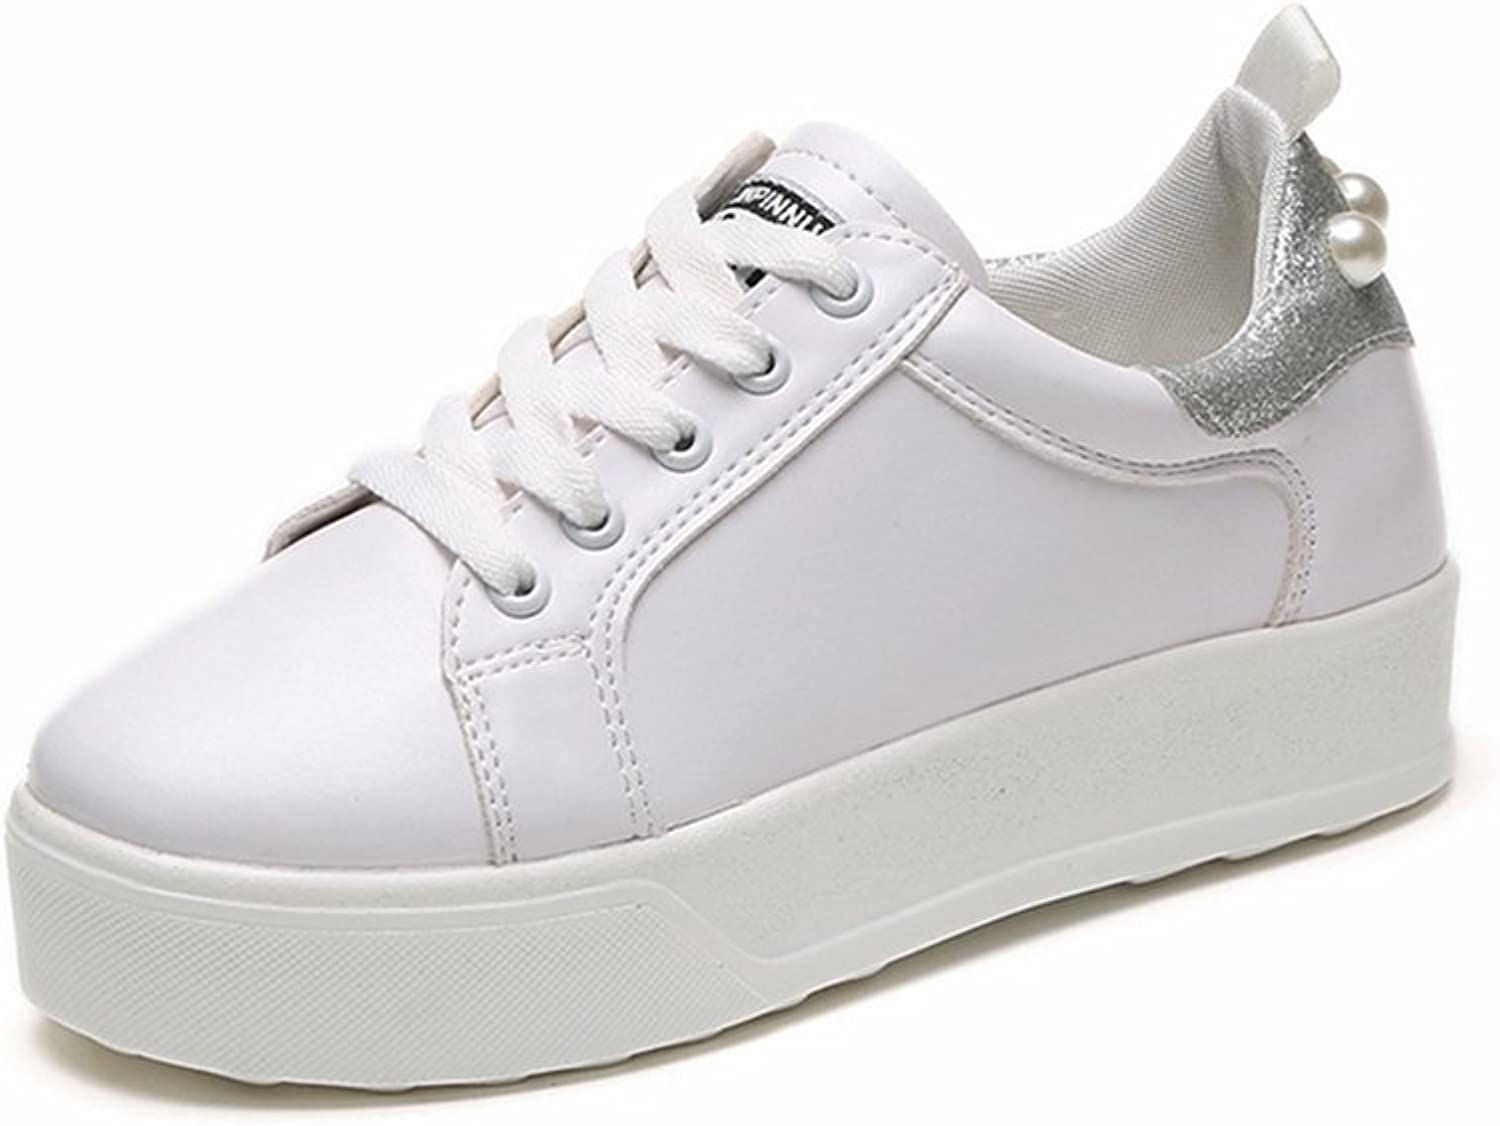 CYBLING Women's Thick Soles shoes Height Increasing shoes Casual Fashion Sneakers